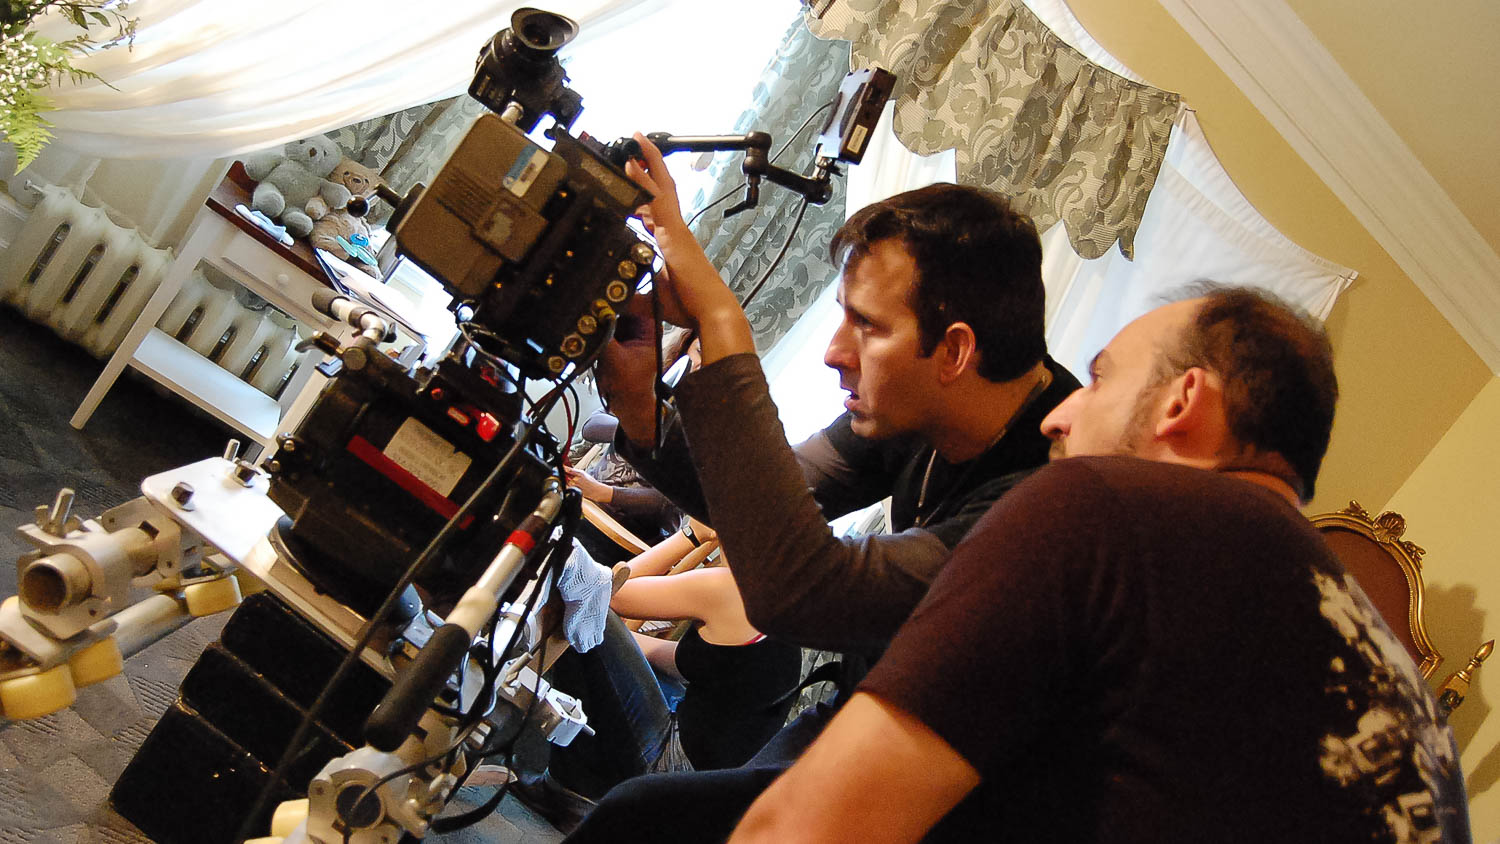 Serpent Lullaby and our director of photography Richard Duquette preping a scene with the director